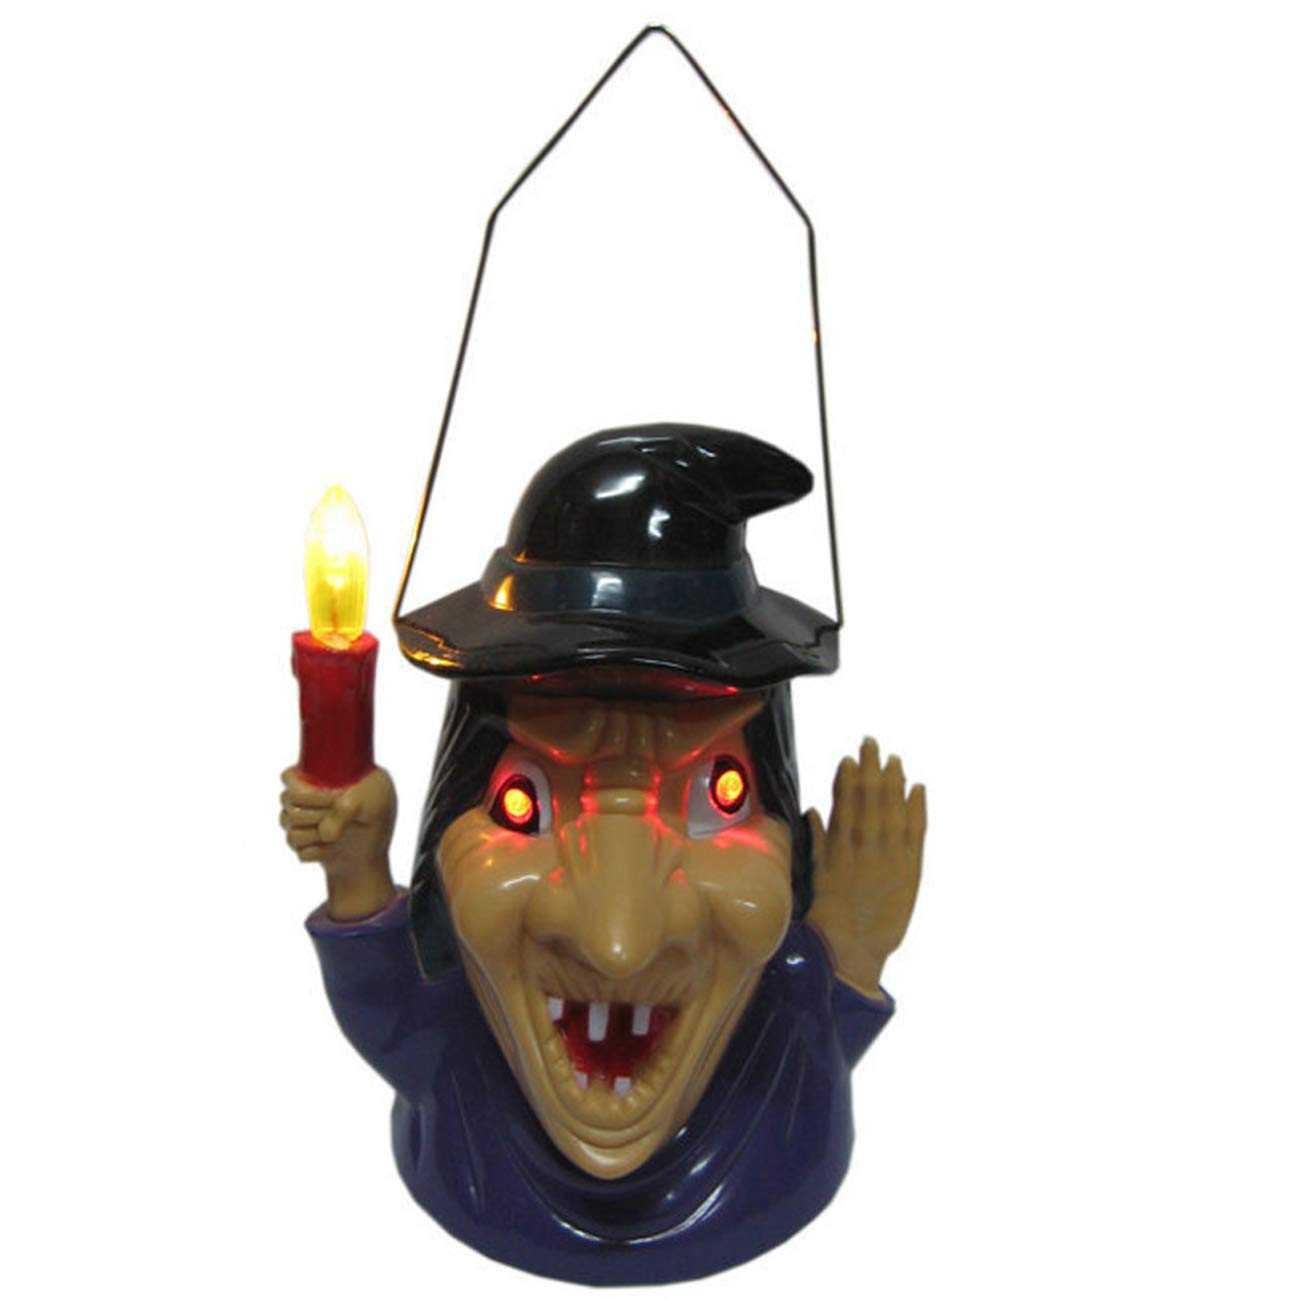 Rosennie Halloween Witch Hanging Light,Halloween Decorations Cosplay Costume Props Party Witch Hanging Light Lamp Eye Flashing Terror Sound Halloween Party Decor (Witch Hanging Light) Seasonal Decoration